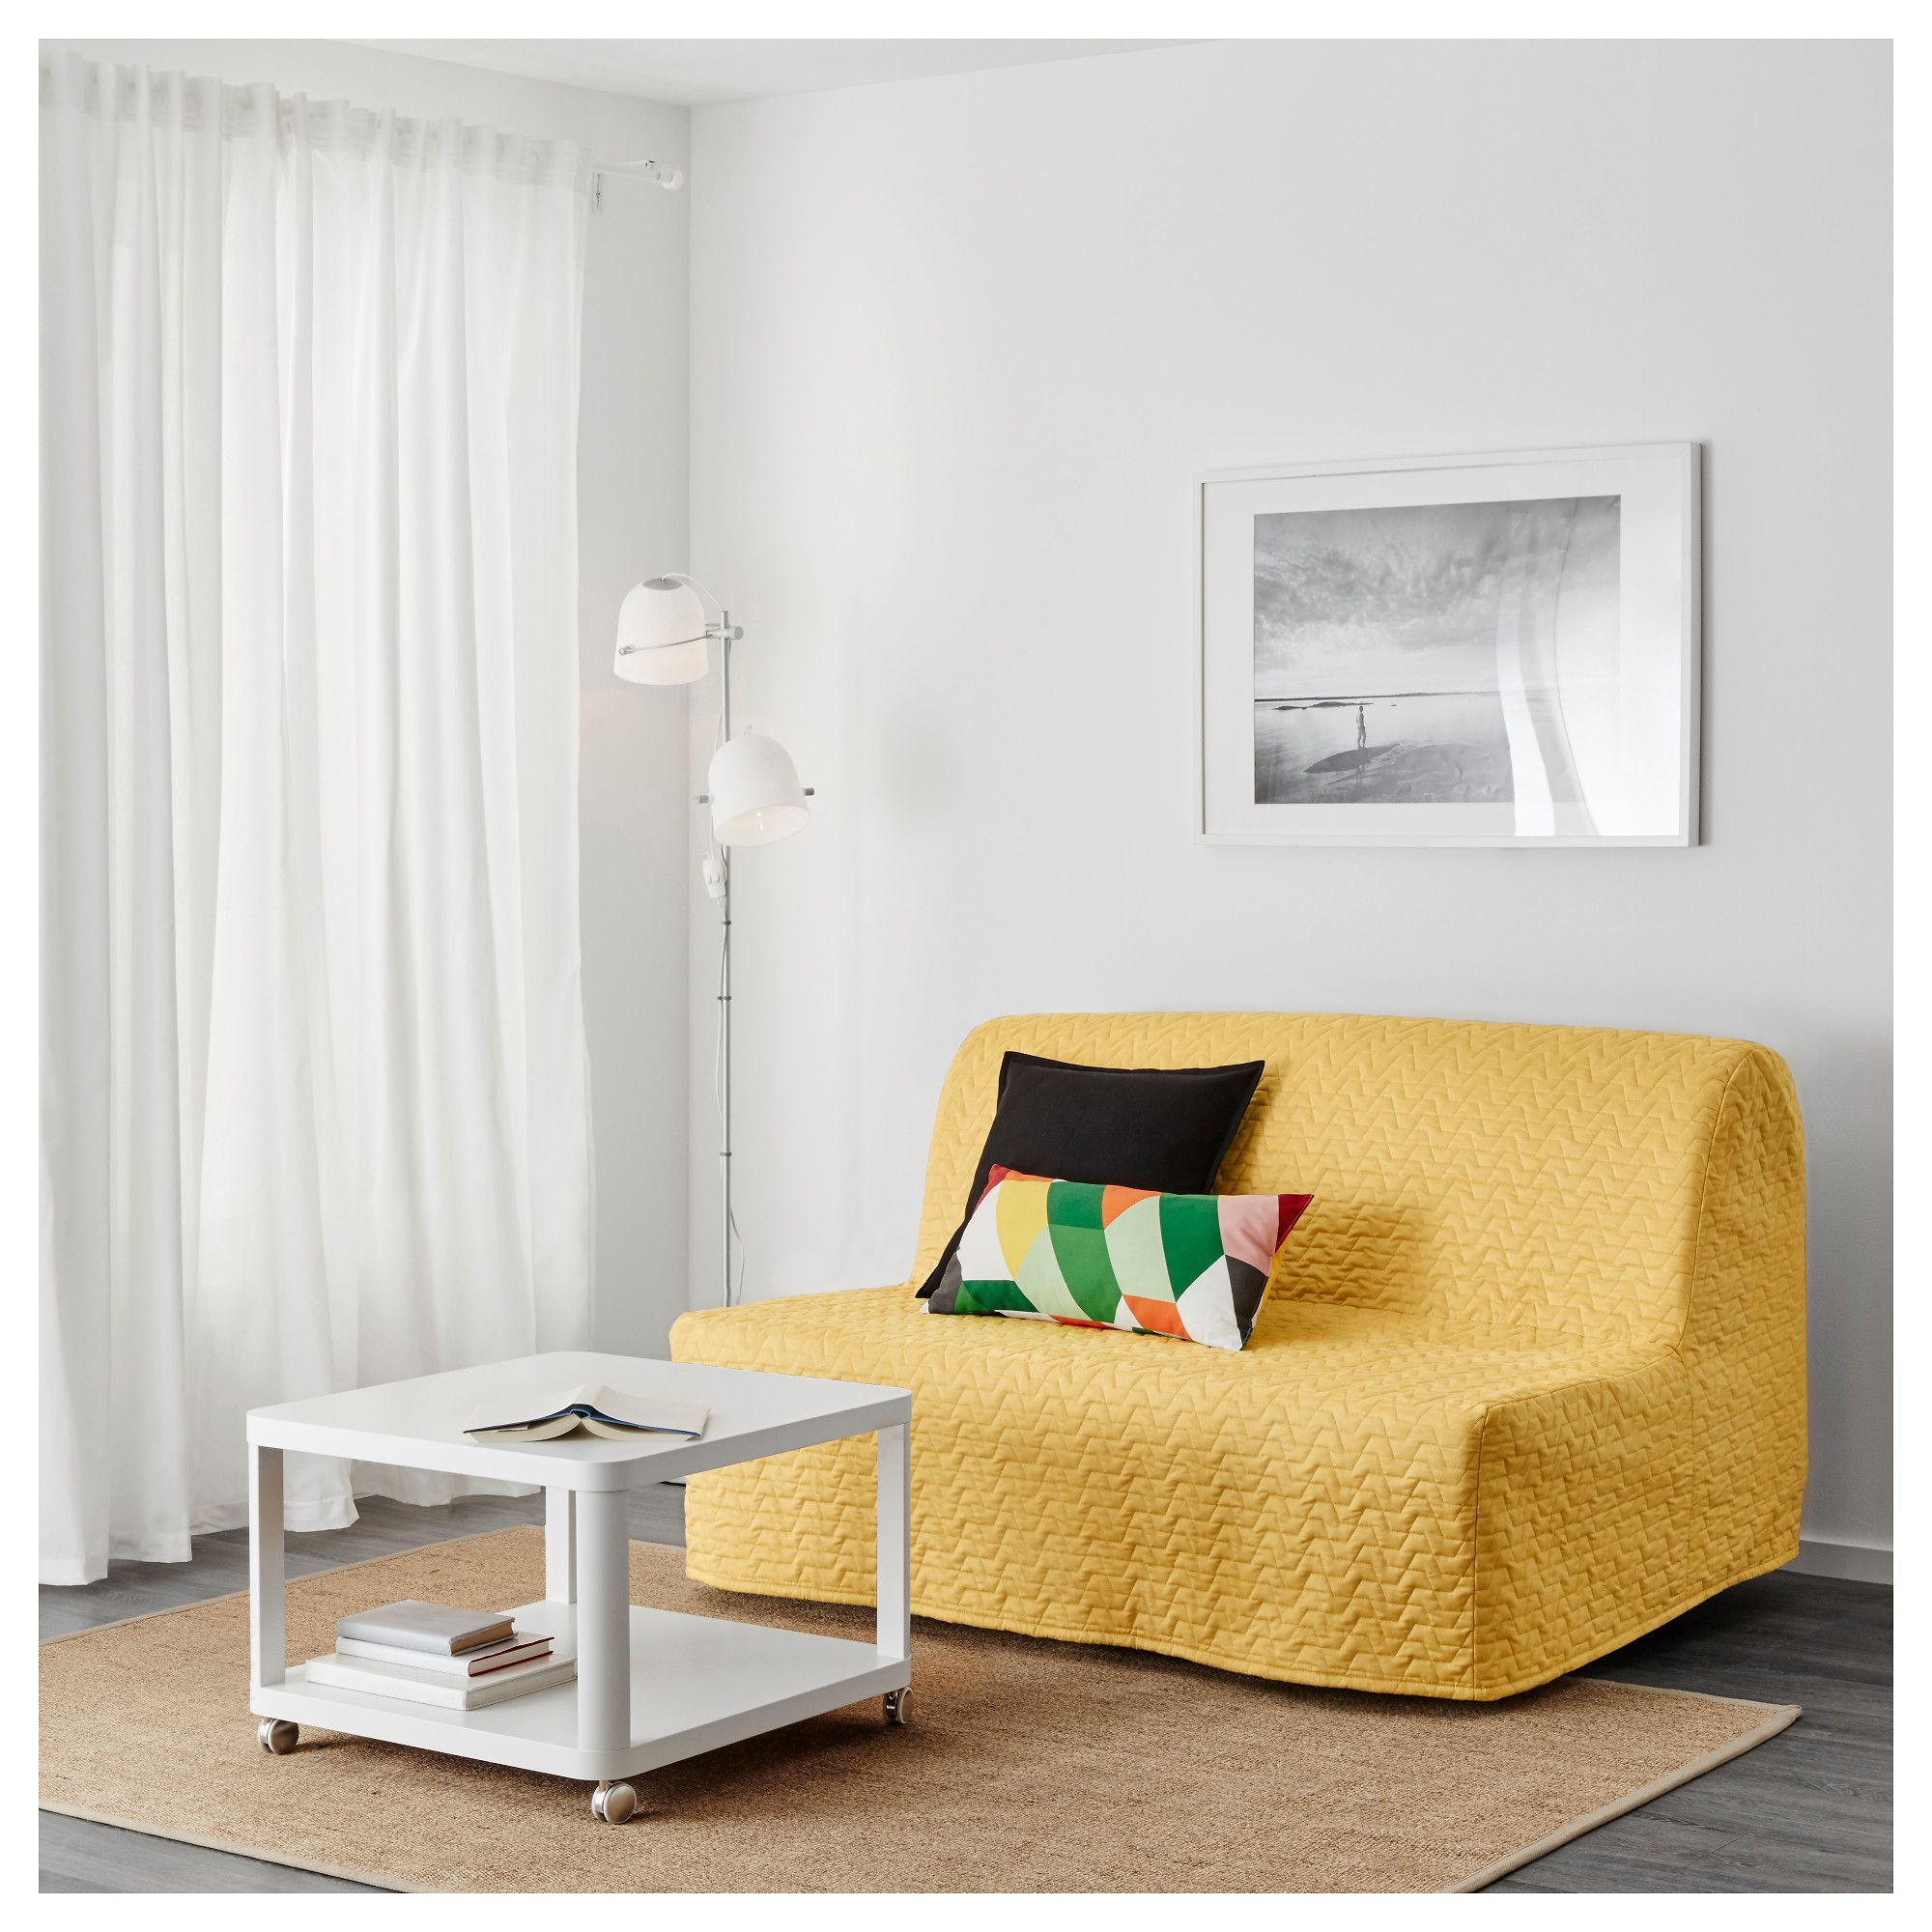 Ikea Lycksele Murbo Two Seat Sofa Bed Comfortable And Firm